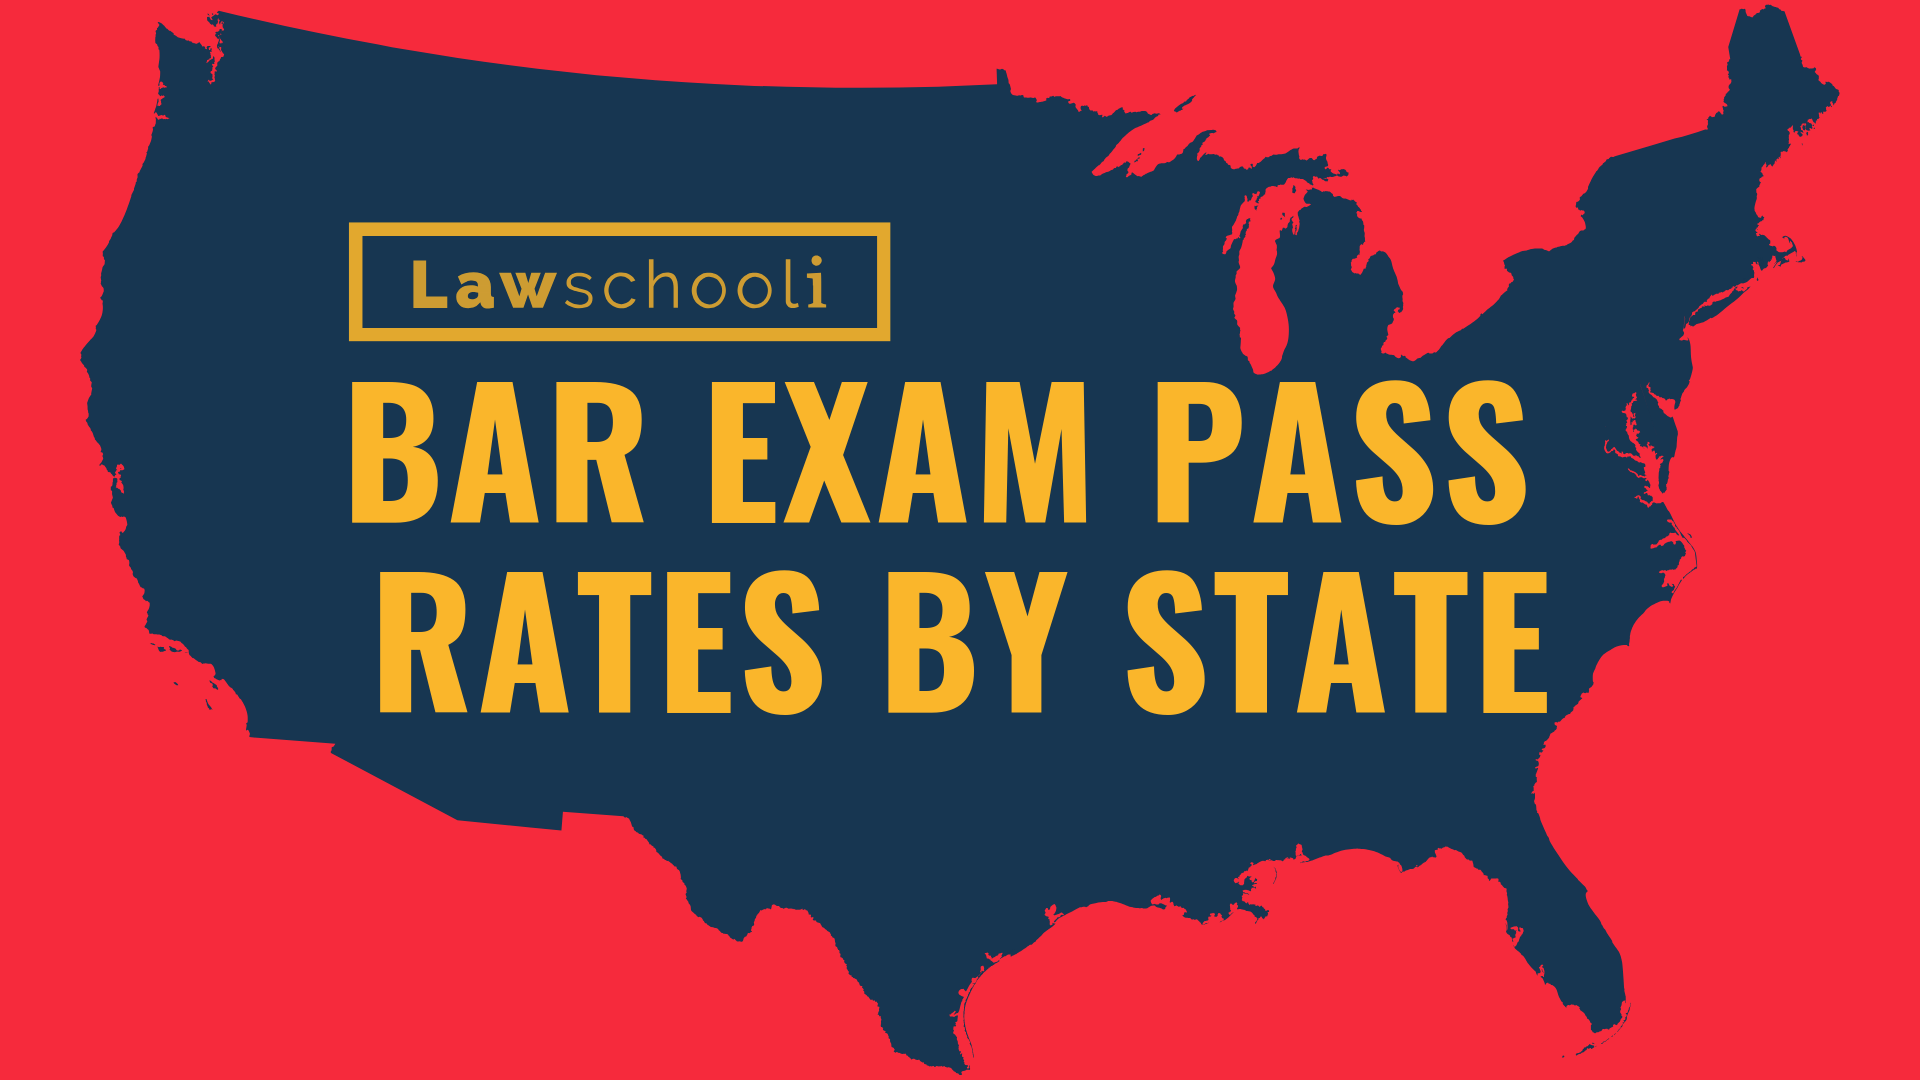 Bar Exam Pass Rate By State Lawschooli